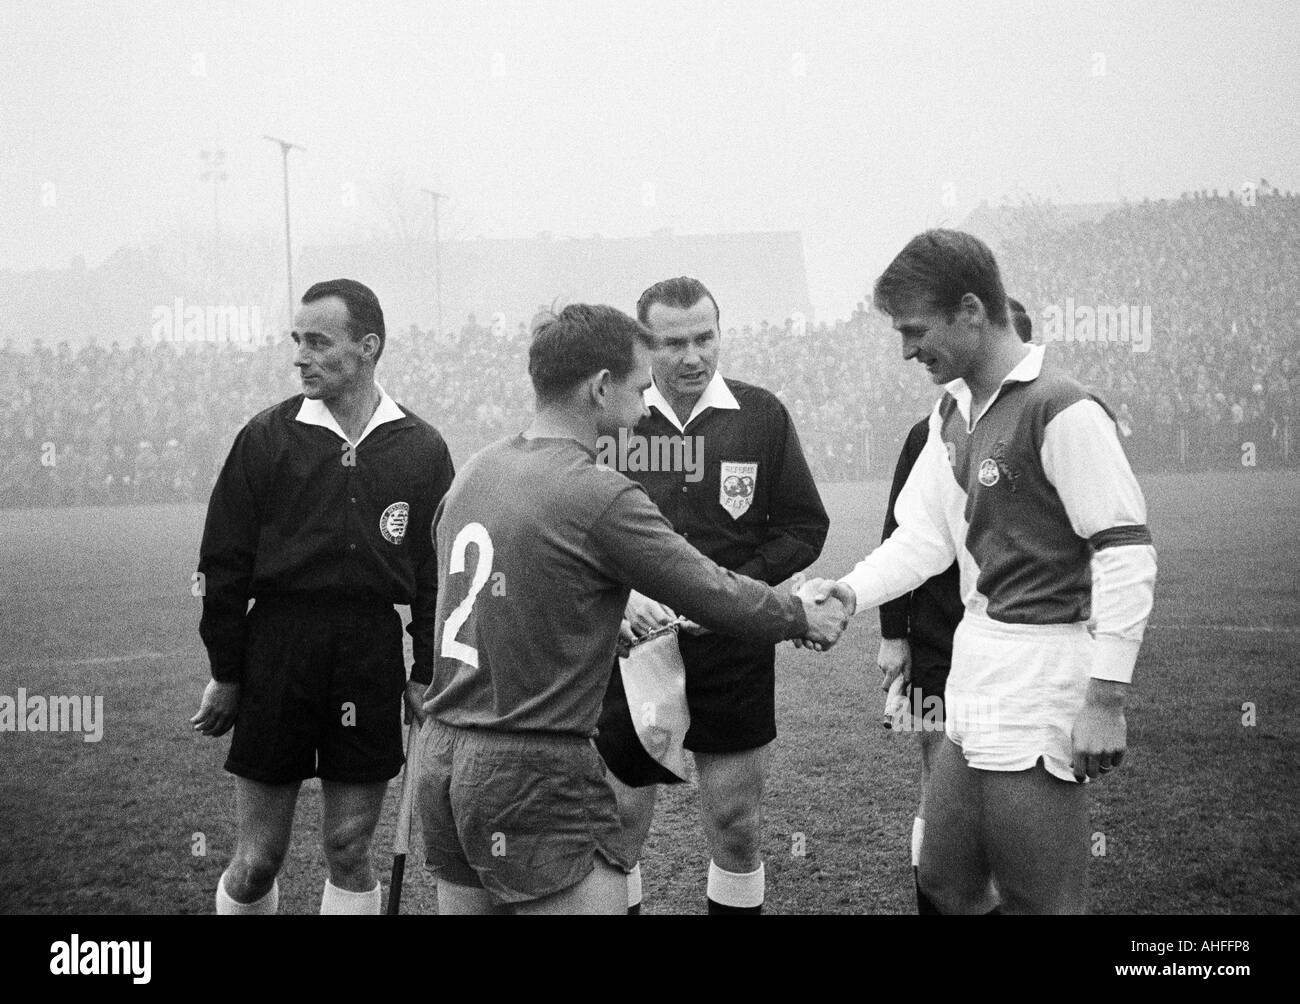 football, Bundesliga, 1965/1966, Boekelberg Stadium, Borussia Moenchengladbach versus 1. FC Cologne 2:3, team captains Albert Jansen (MG, links) and Karl Heinz Thielen (Koeln) welcoming, behind referee Kurt Tschenscher from Mannheim, left an assistant - Stock Image